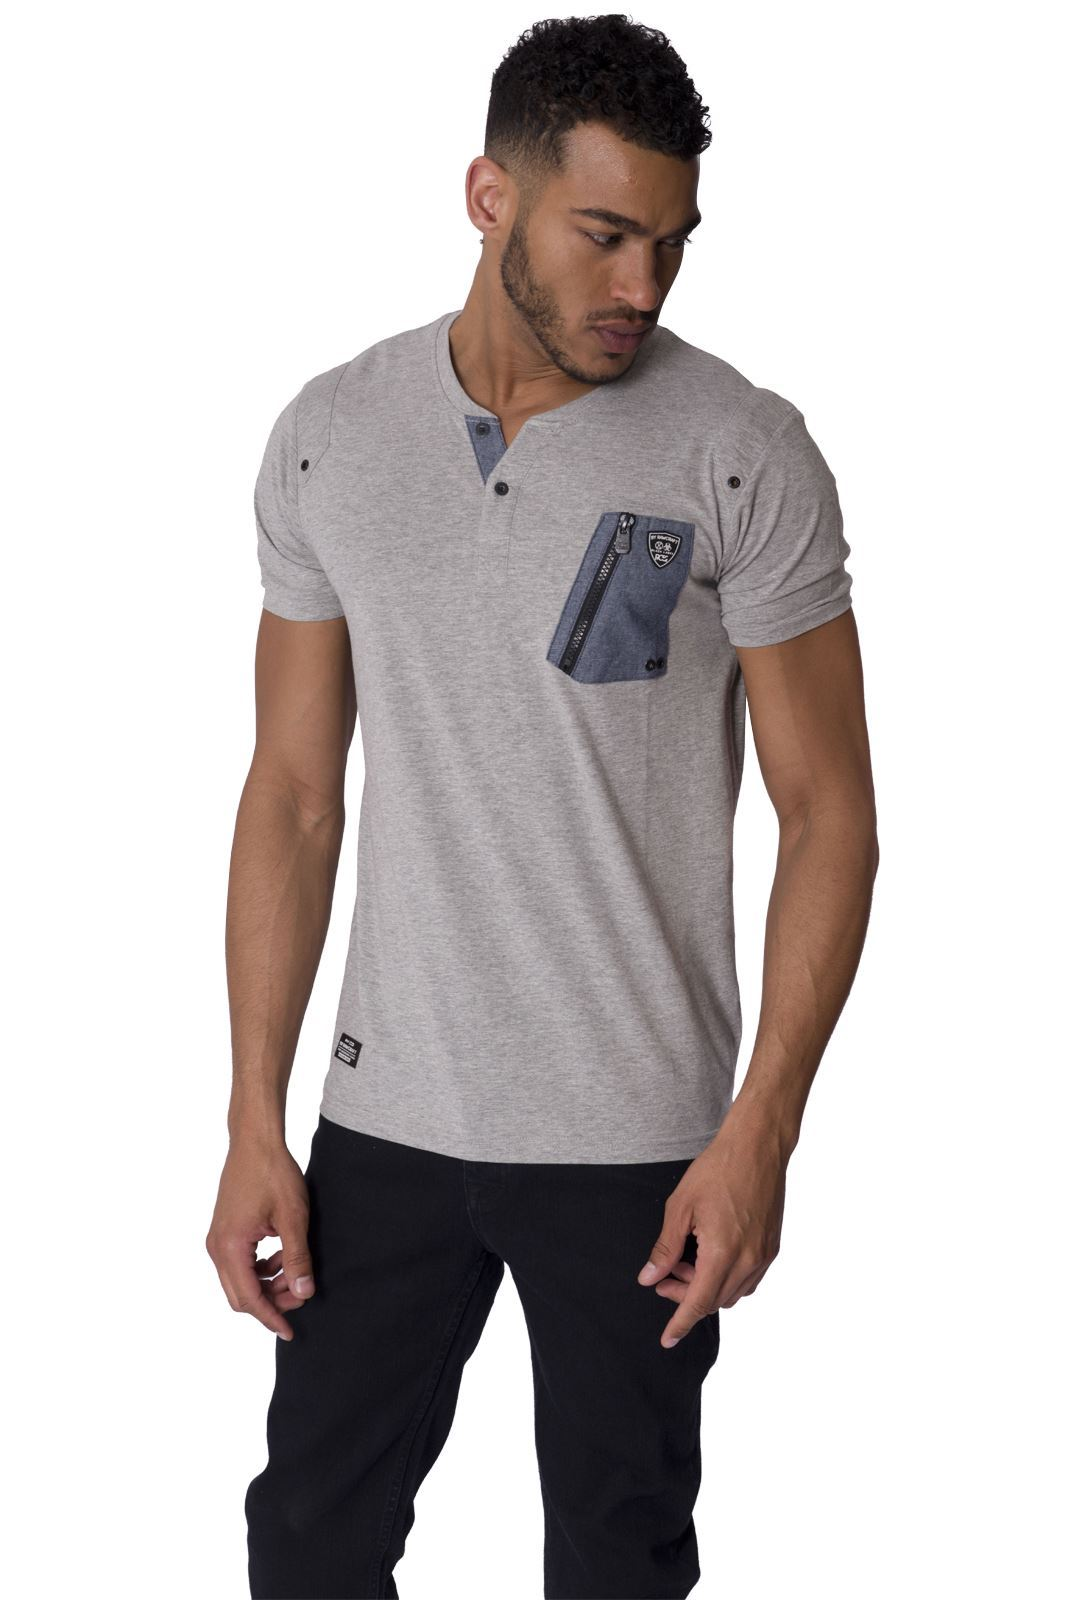 rawcraft mens short sleeve t shirt zip chest pocket button